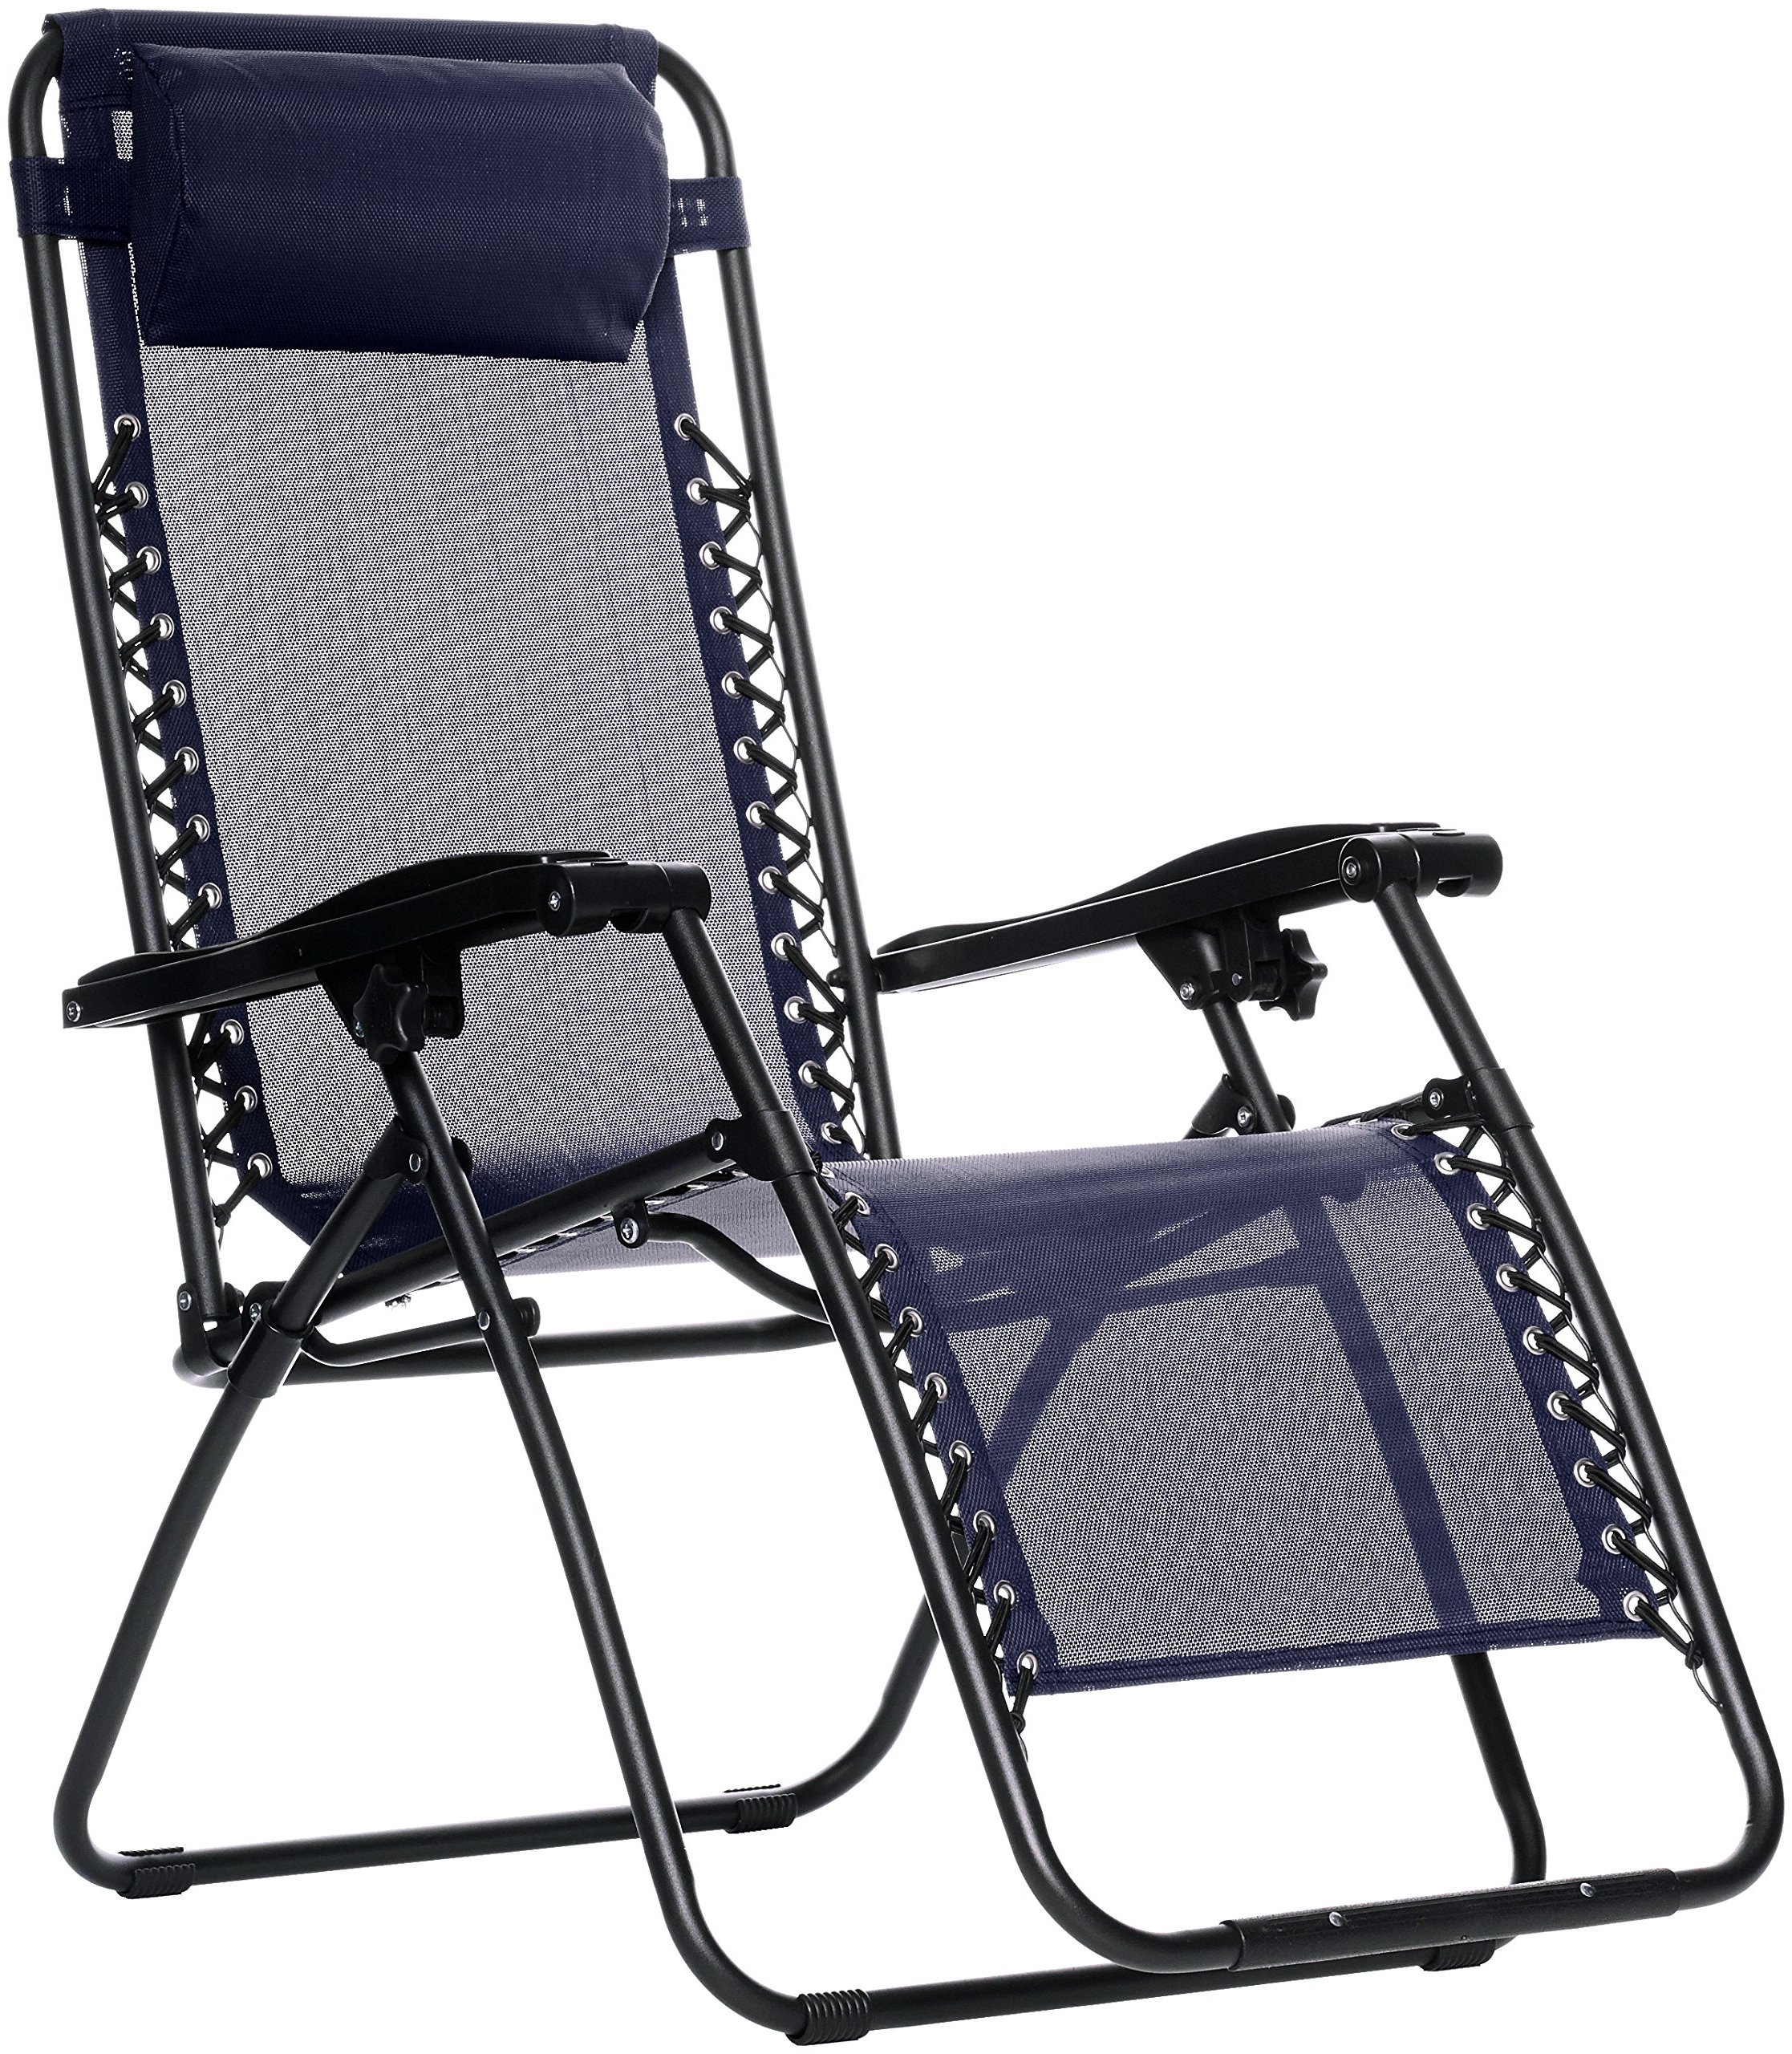 AmazonBasics Outdoor Zero Gravity Lounge Folding Chair, Blue by AmazonBasics